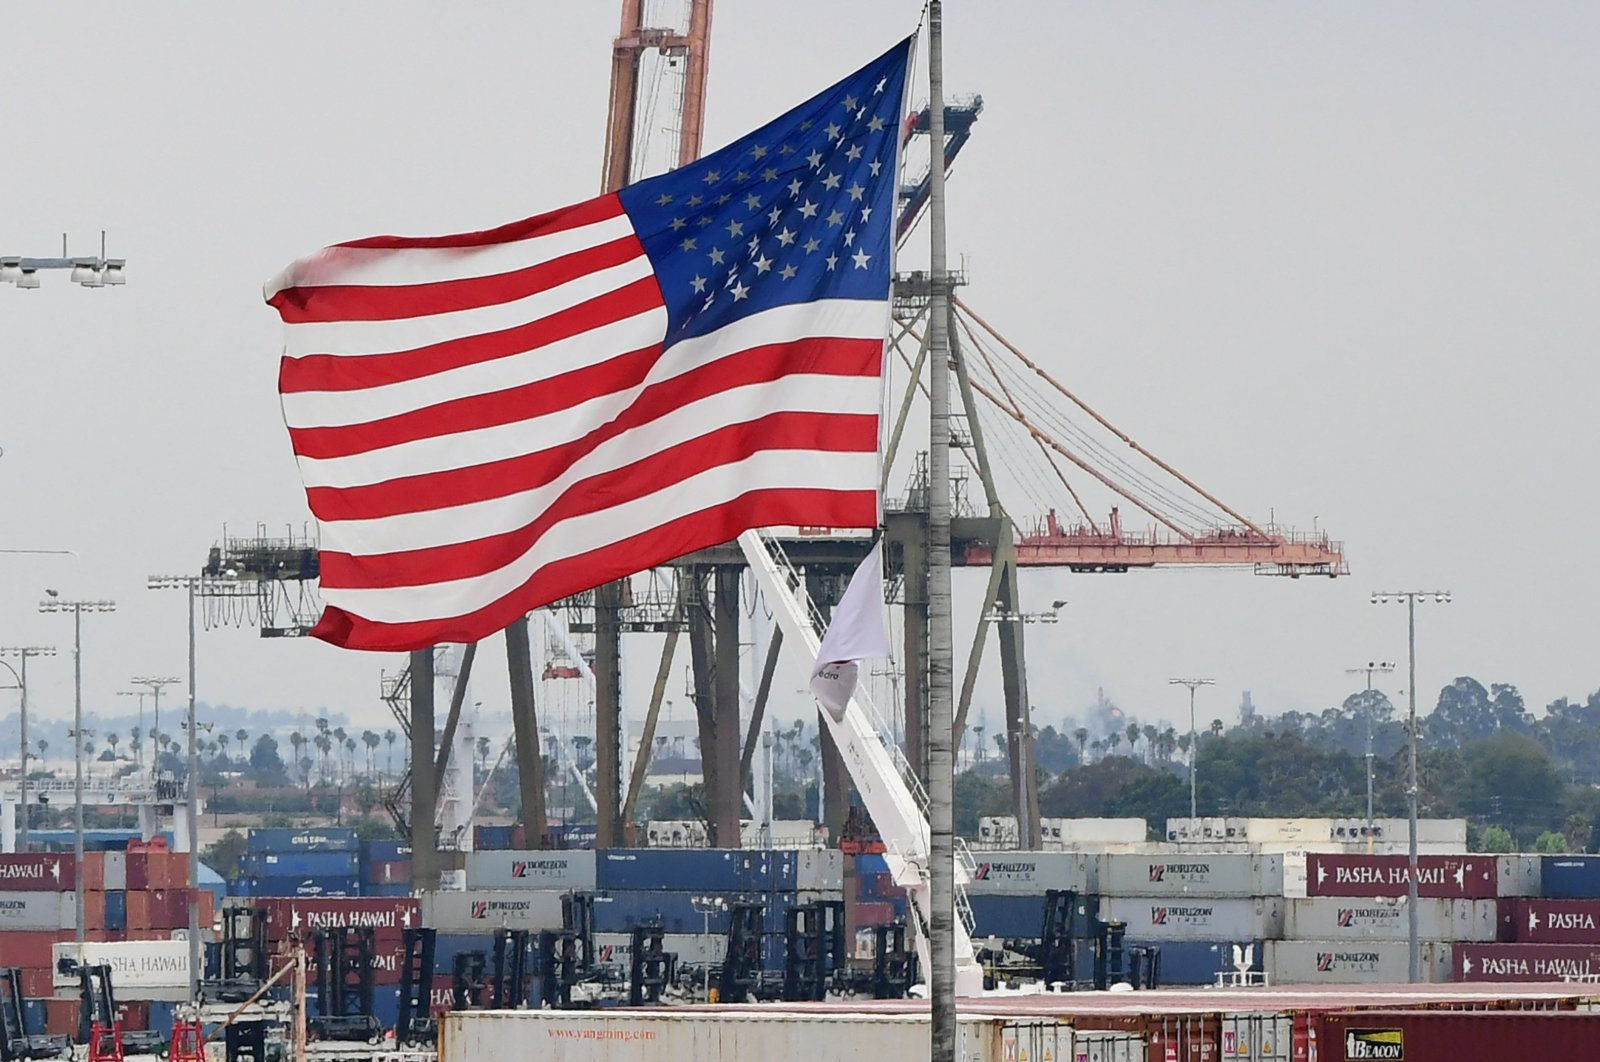 U.S. flag flies in the foreground as containers are seen at the Port of Los Angeles, San Pedro, California, the U.S., June 18, 2019. (AFP Photo)